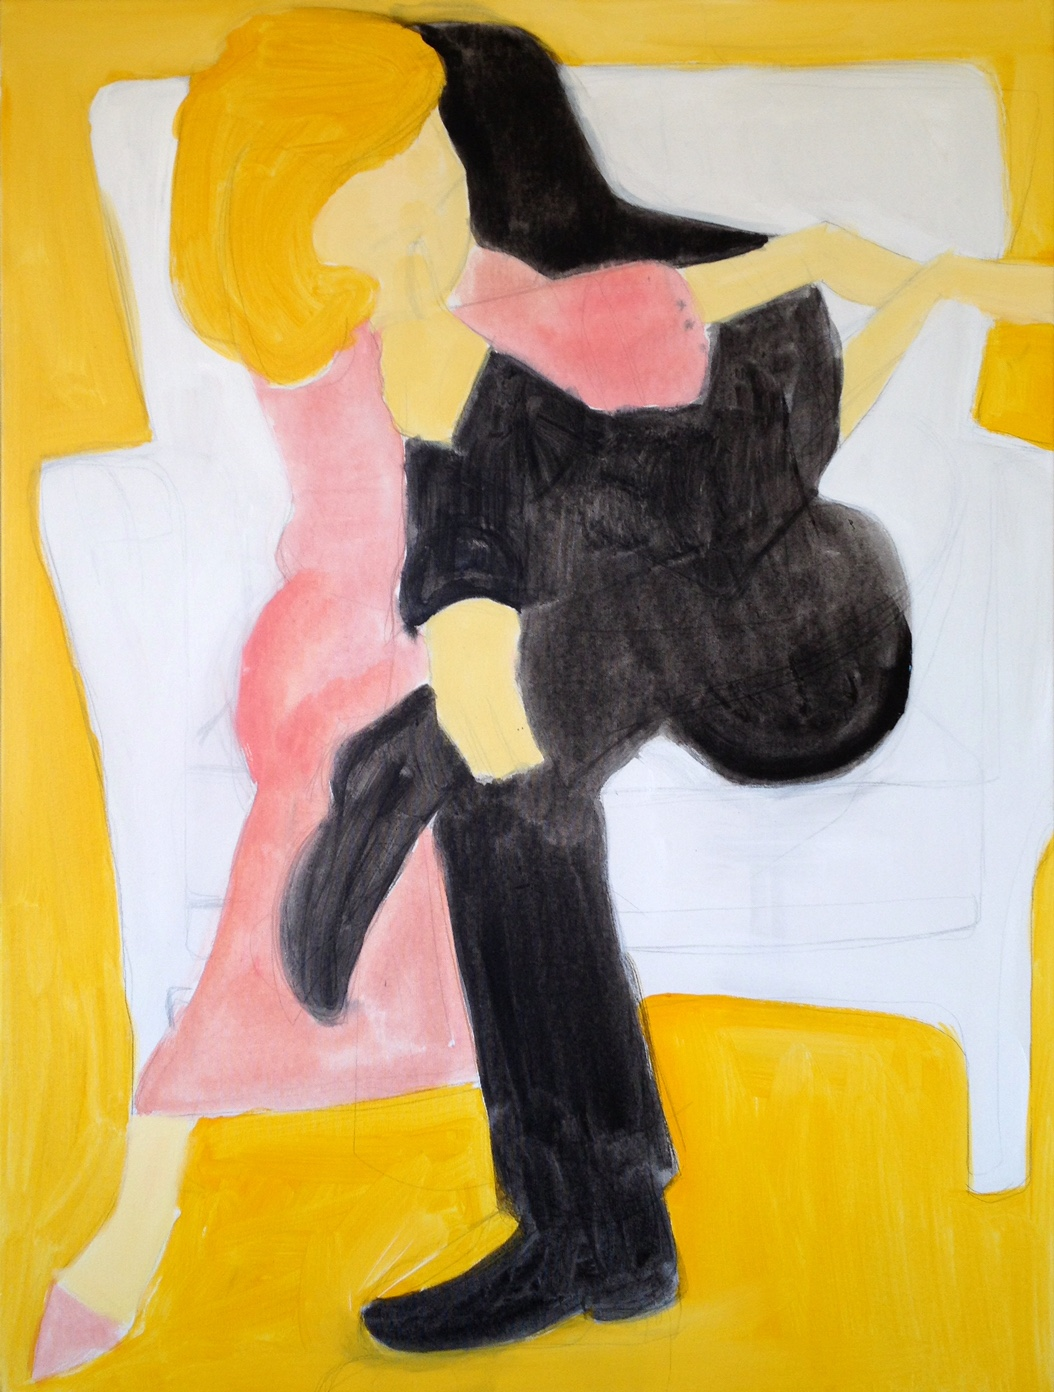 Title:Los # 1  Medium:acrylic and graphite on canvas  Size:48 x 36 x 4 inches  Year:2013